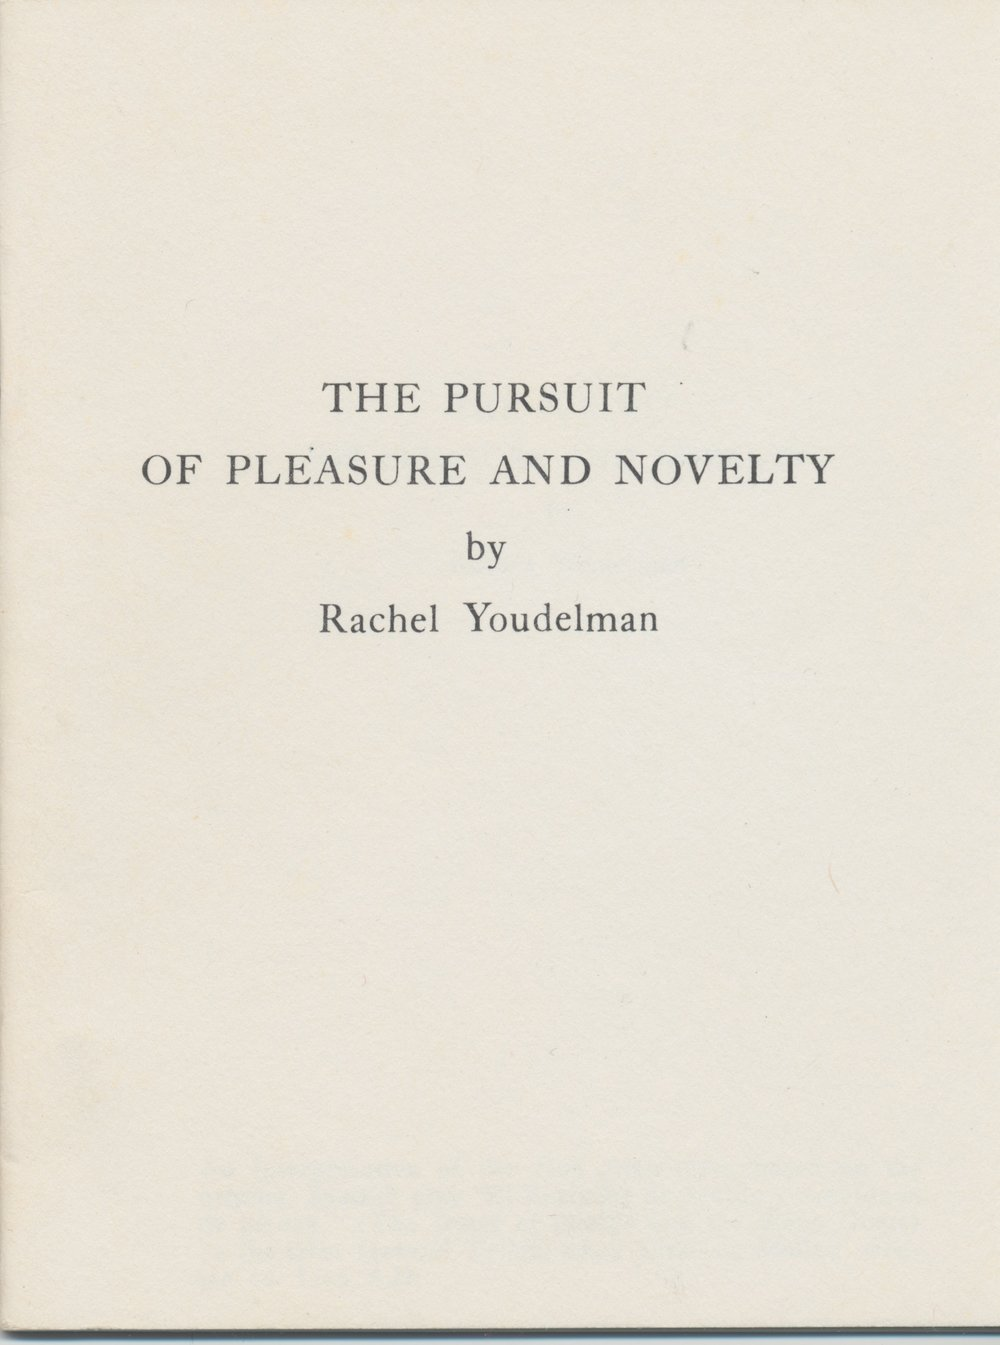 The Pursuit of Pleasure and Novelty